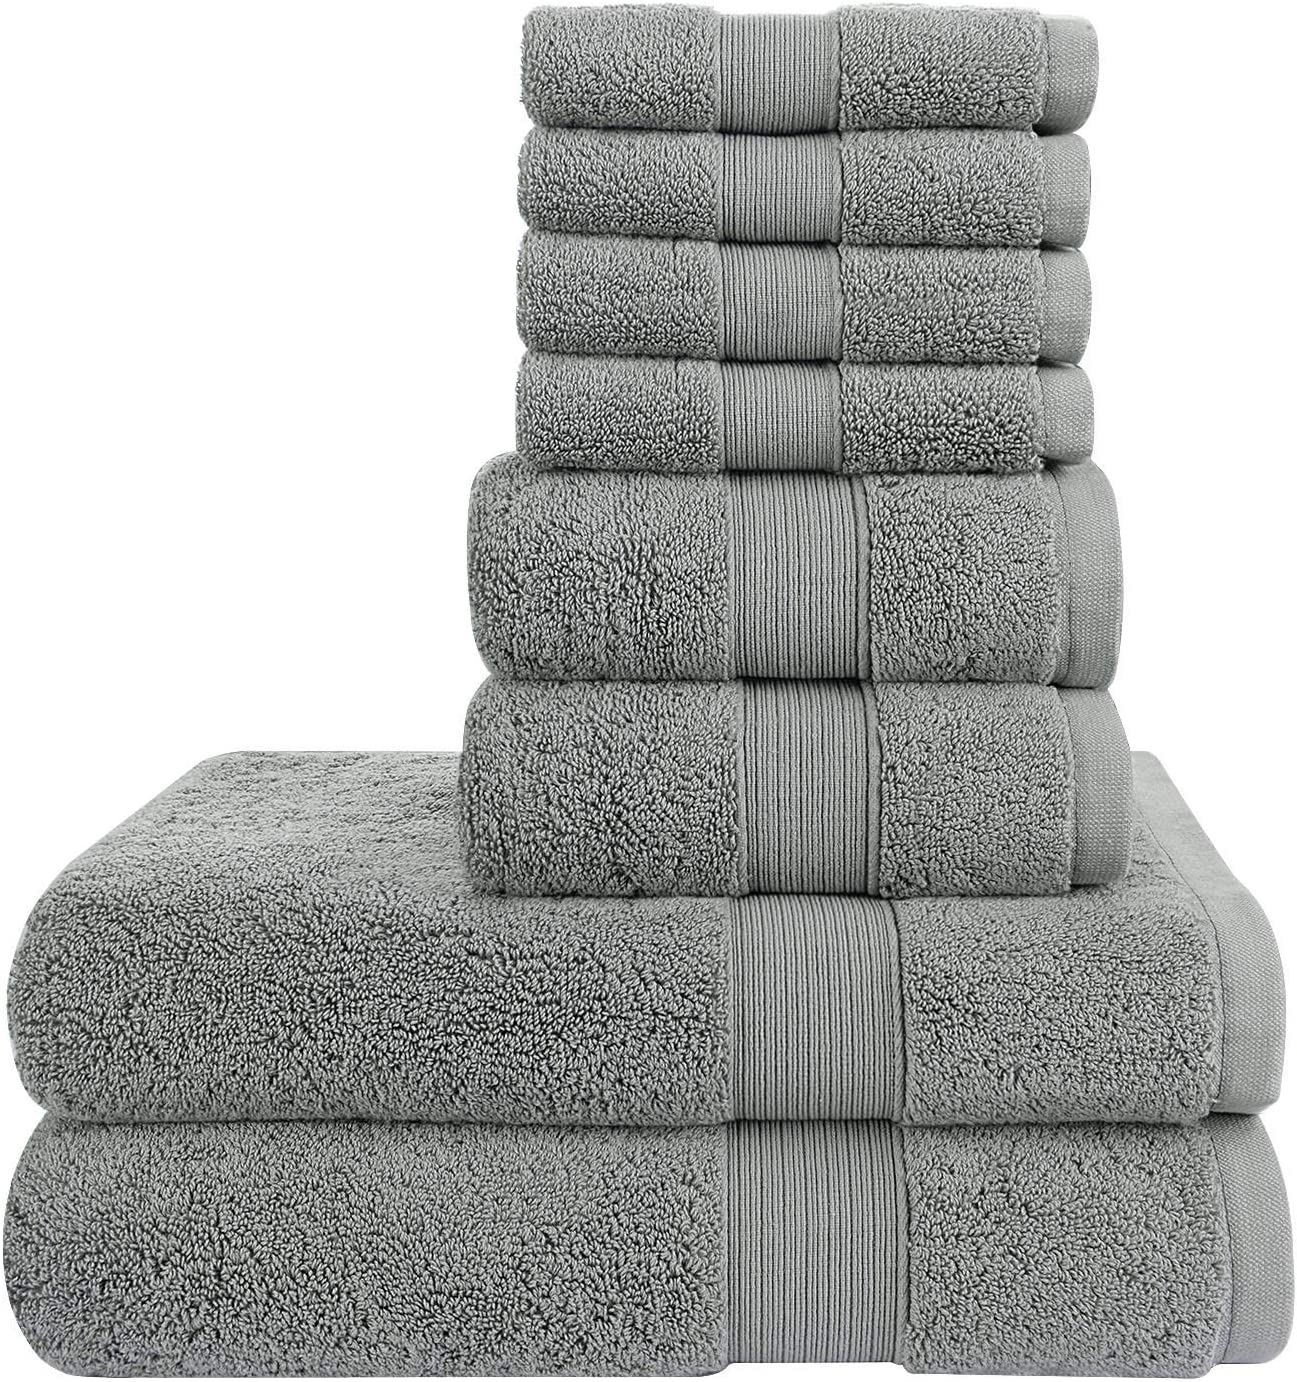 100% Cotton Towels Set 8 Piece Hand Bath Tow 4 years warranty - Excellence 2